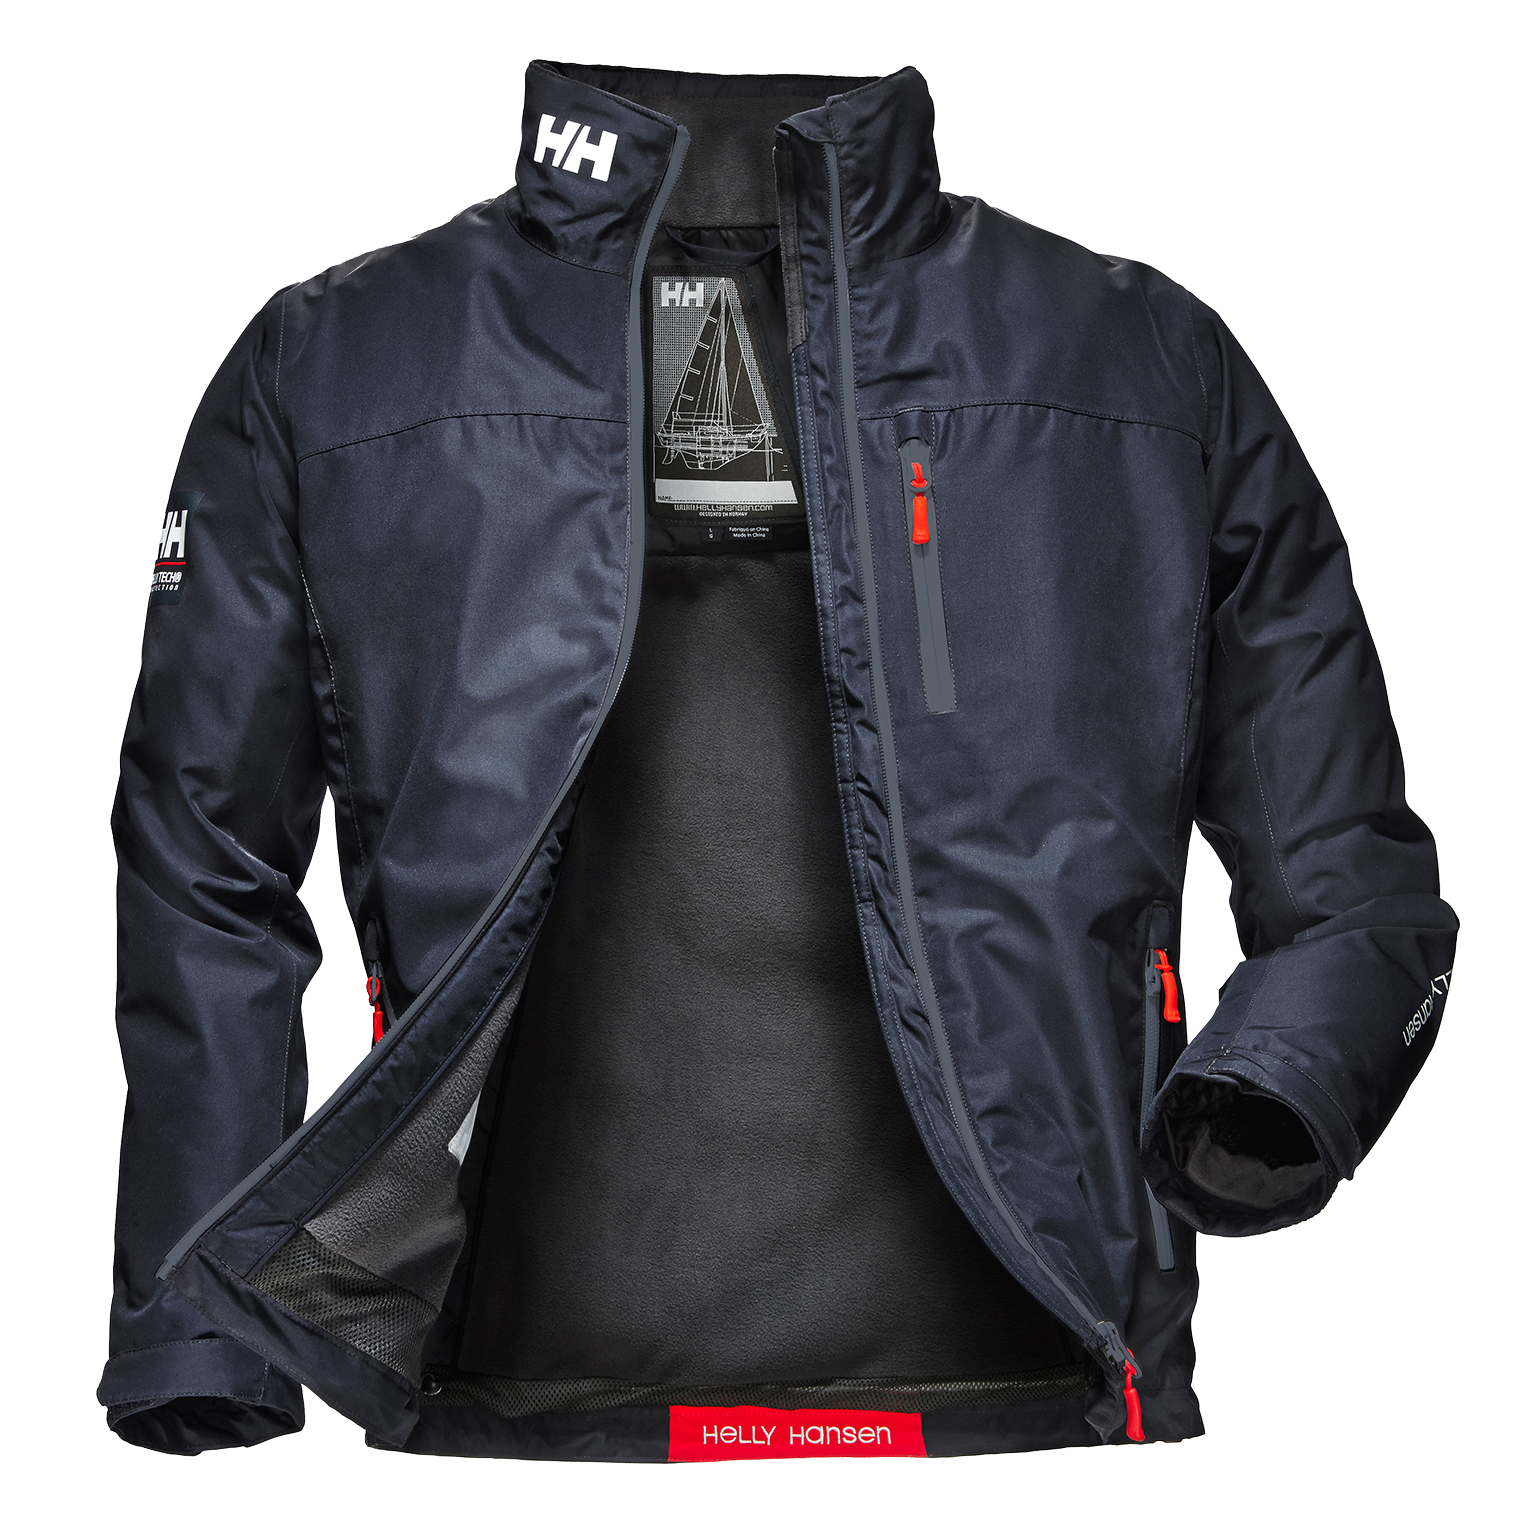 crew midlayer jacket men jackets helly hansen official online store my style pinterest. Black Bedroom Furniture Sets. Home Design Ideas